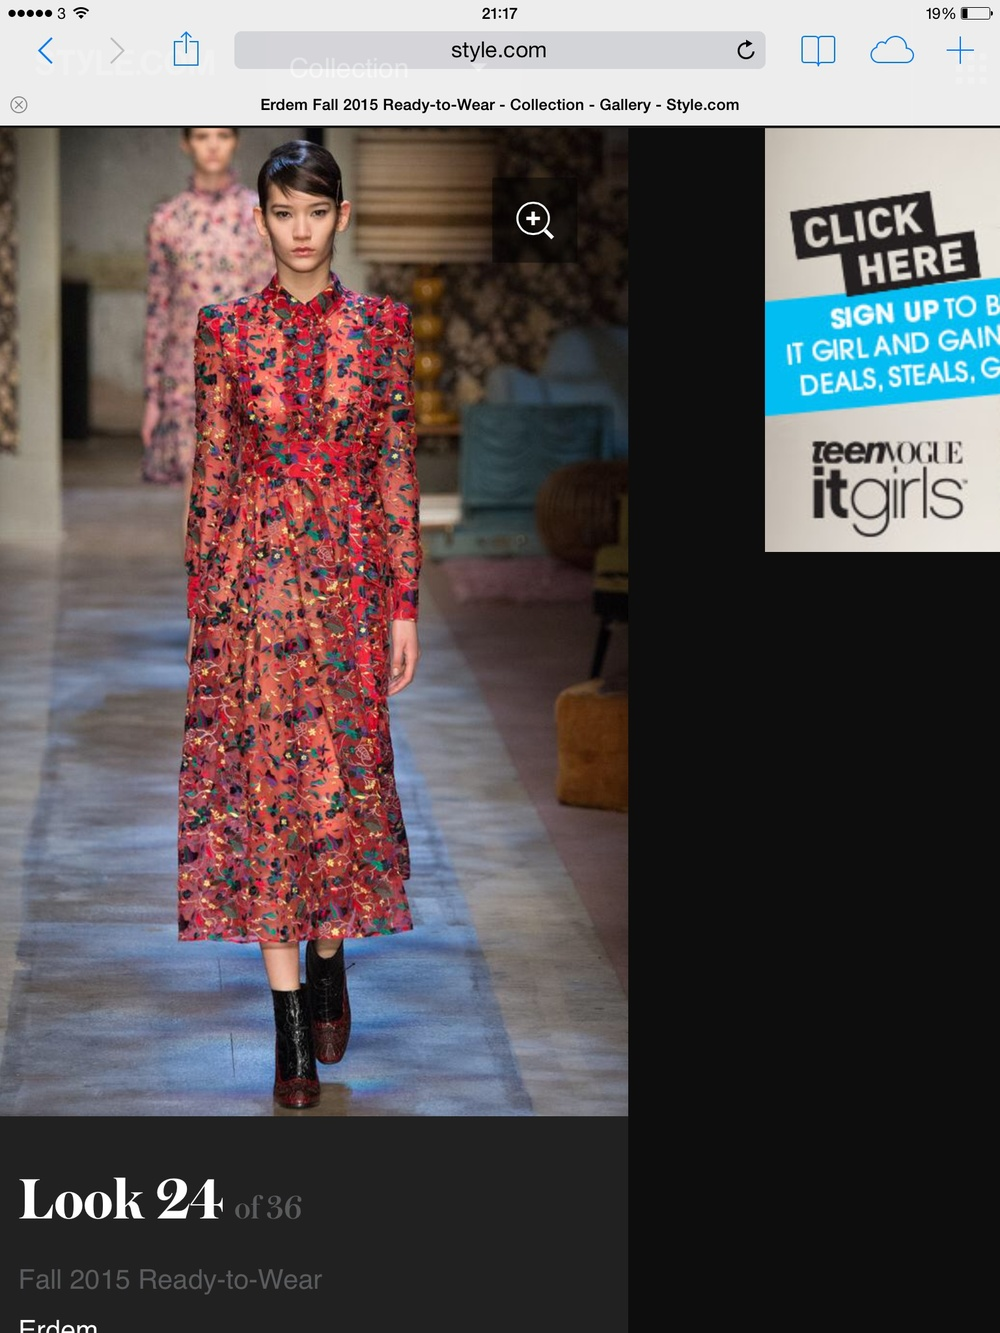 Fashion Designer Erdem on the catwalk from style.com